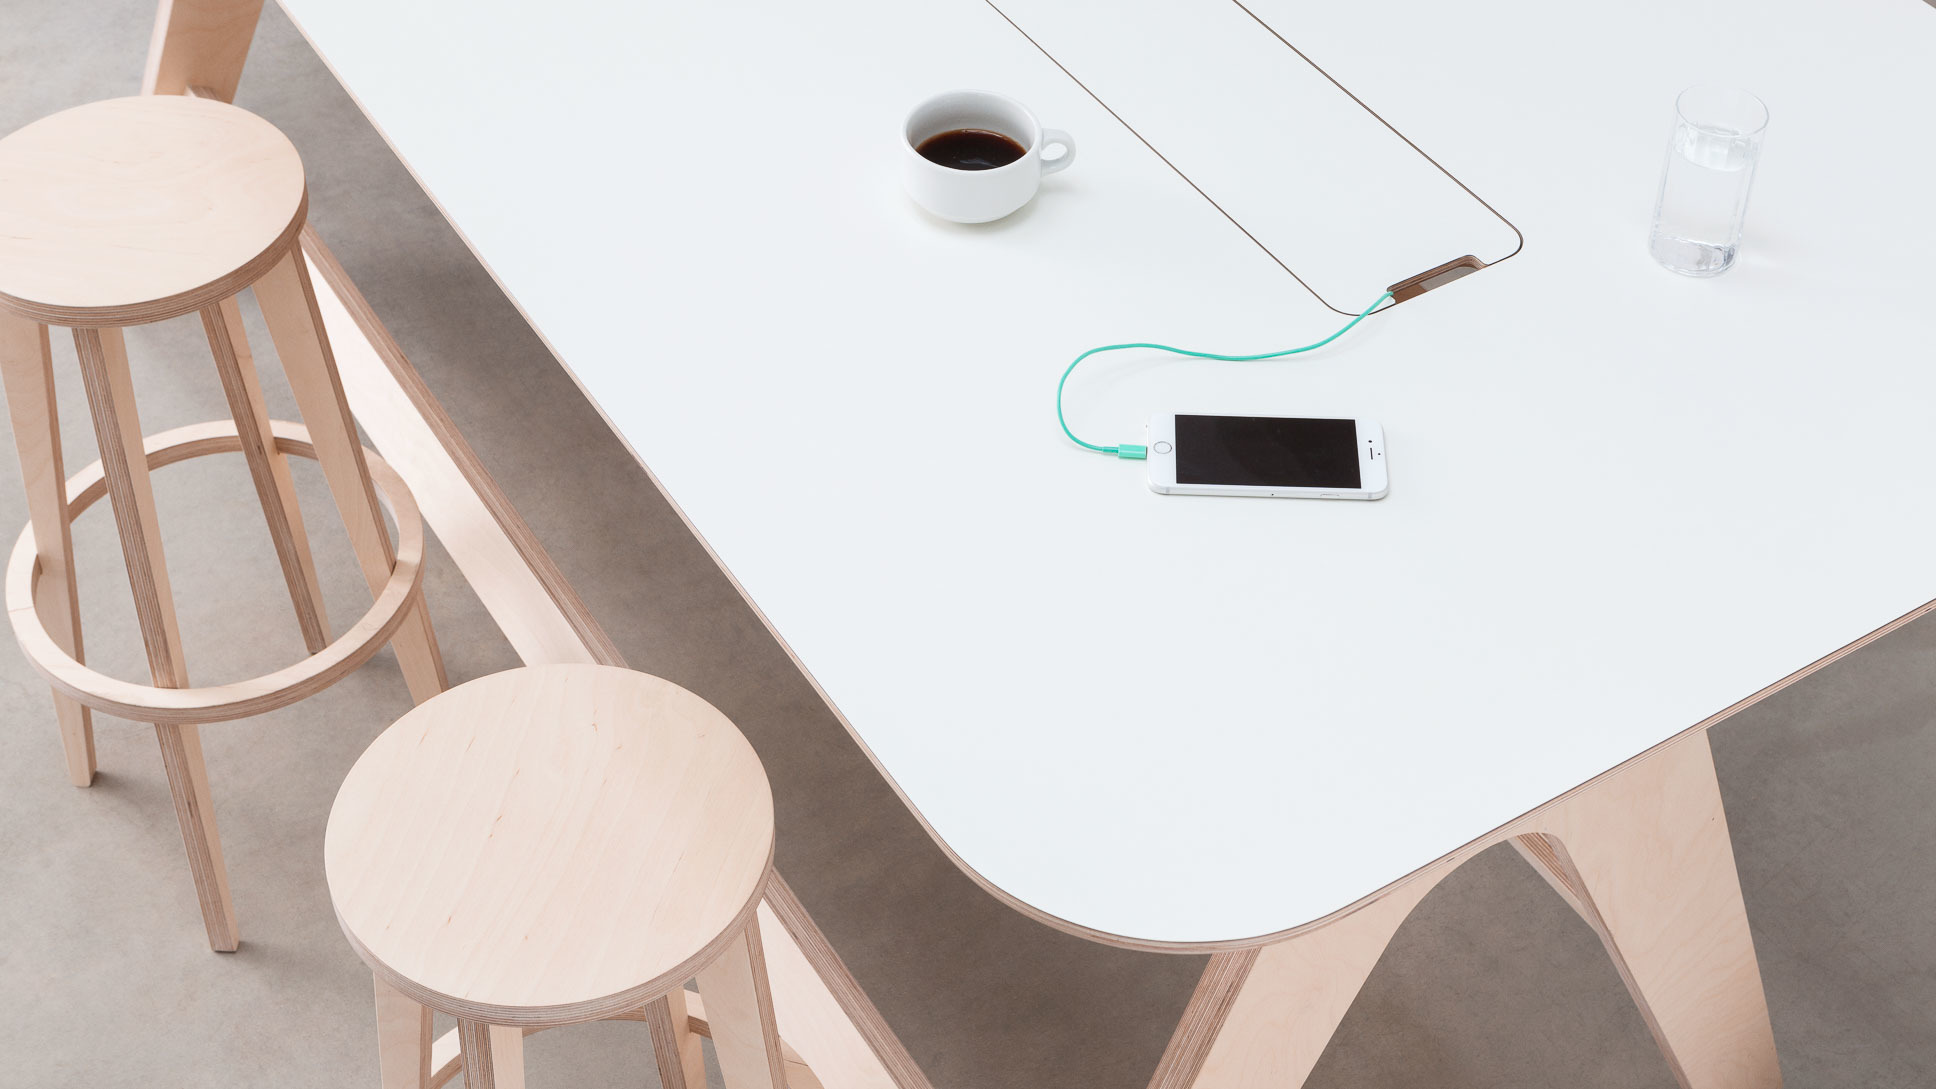 opendesk_furniture_breakout-table_product-page_gallery-image-Shot2-1903_v01.jpg